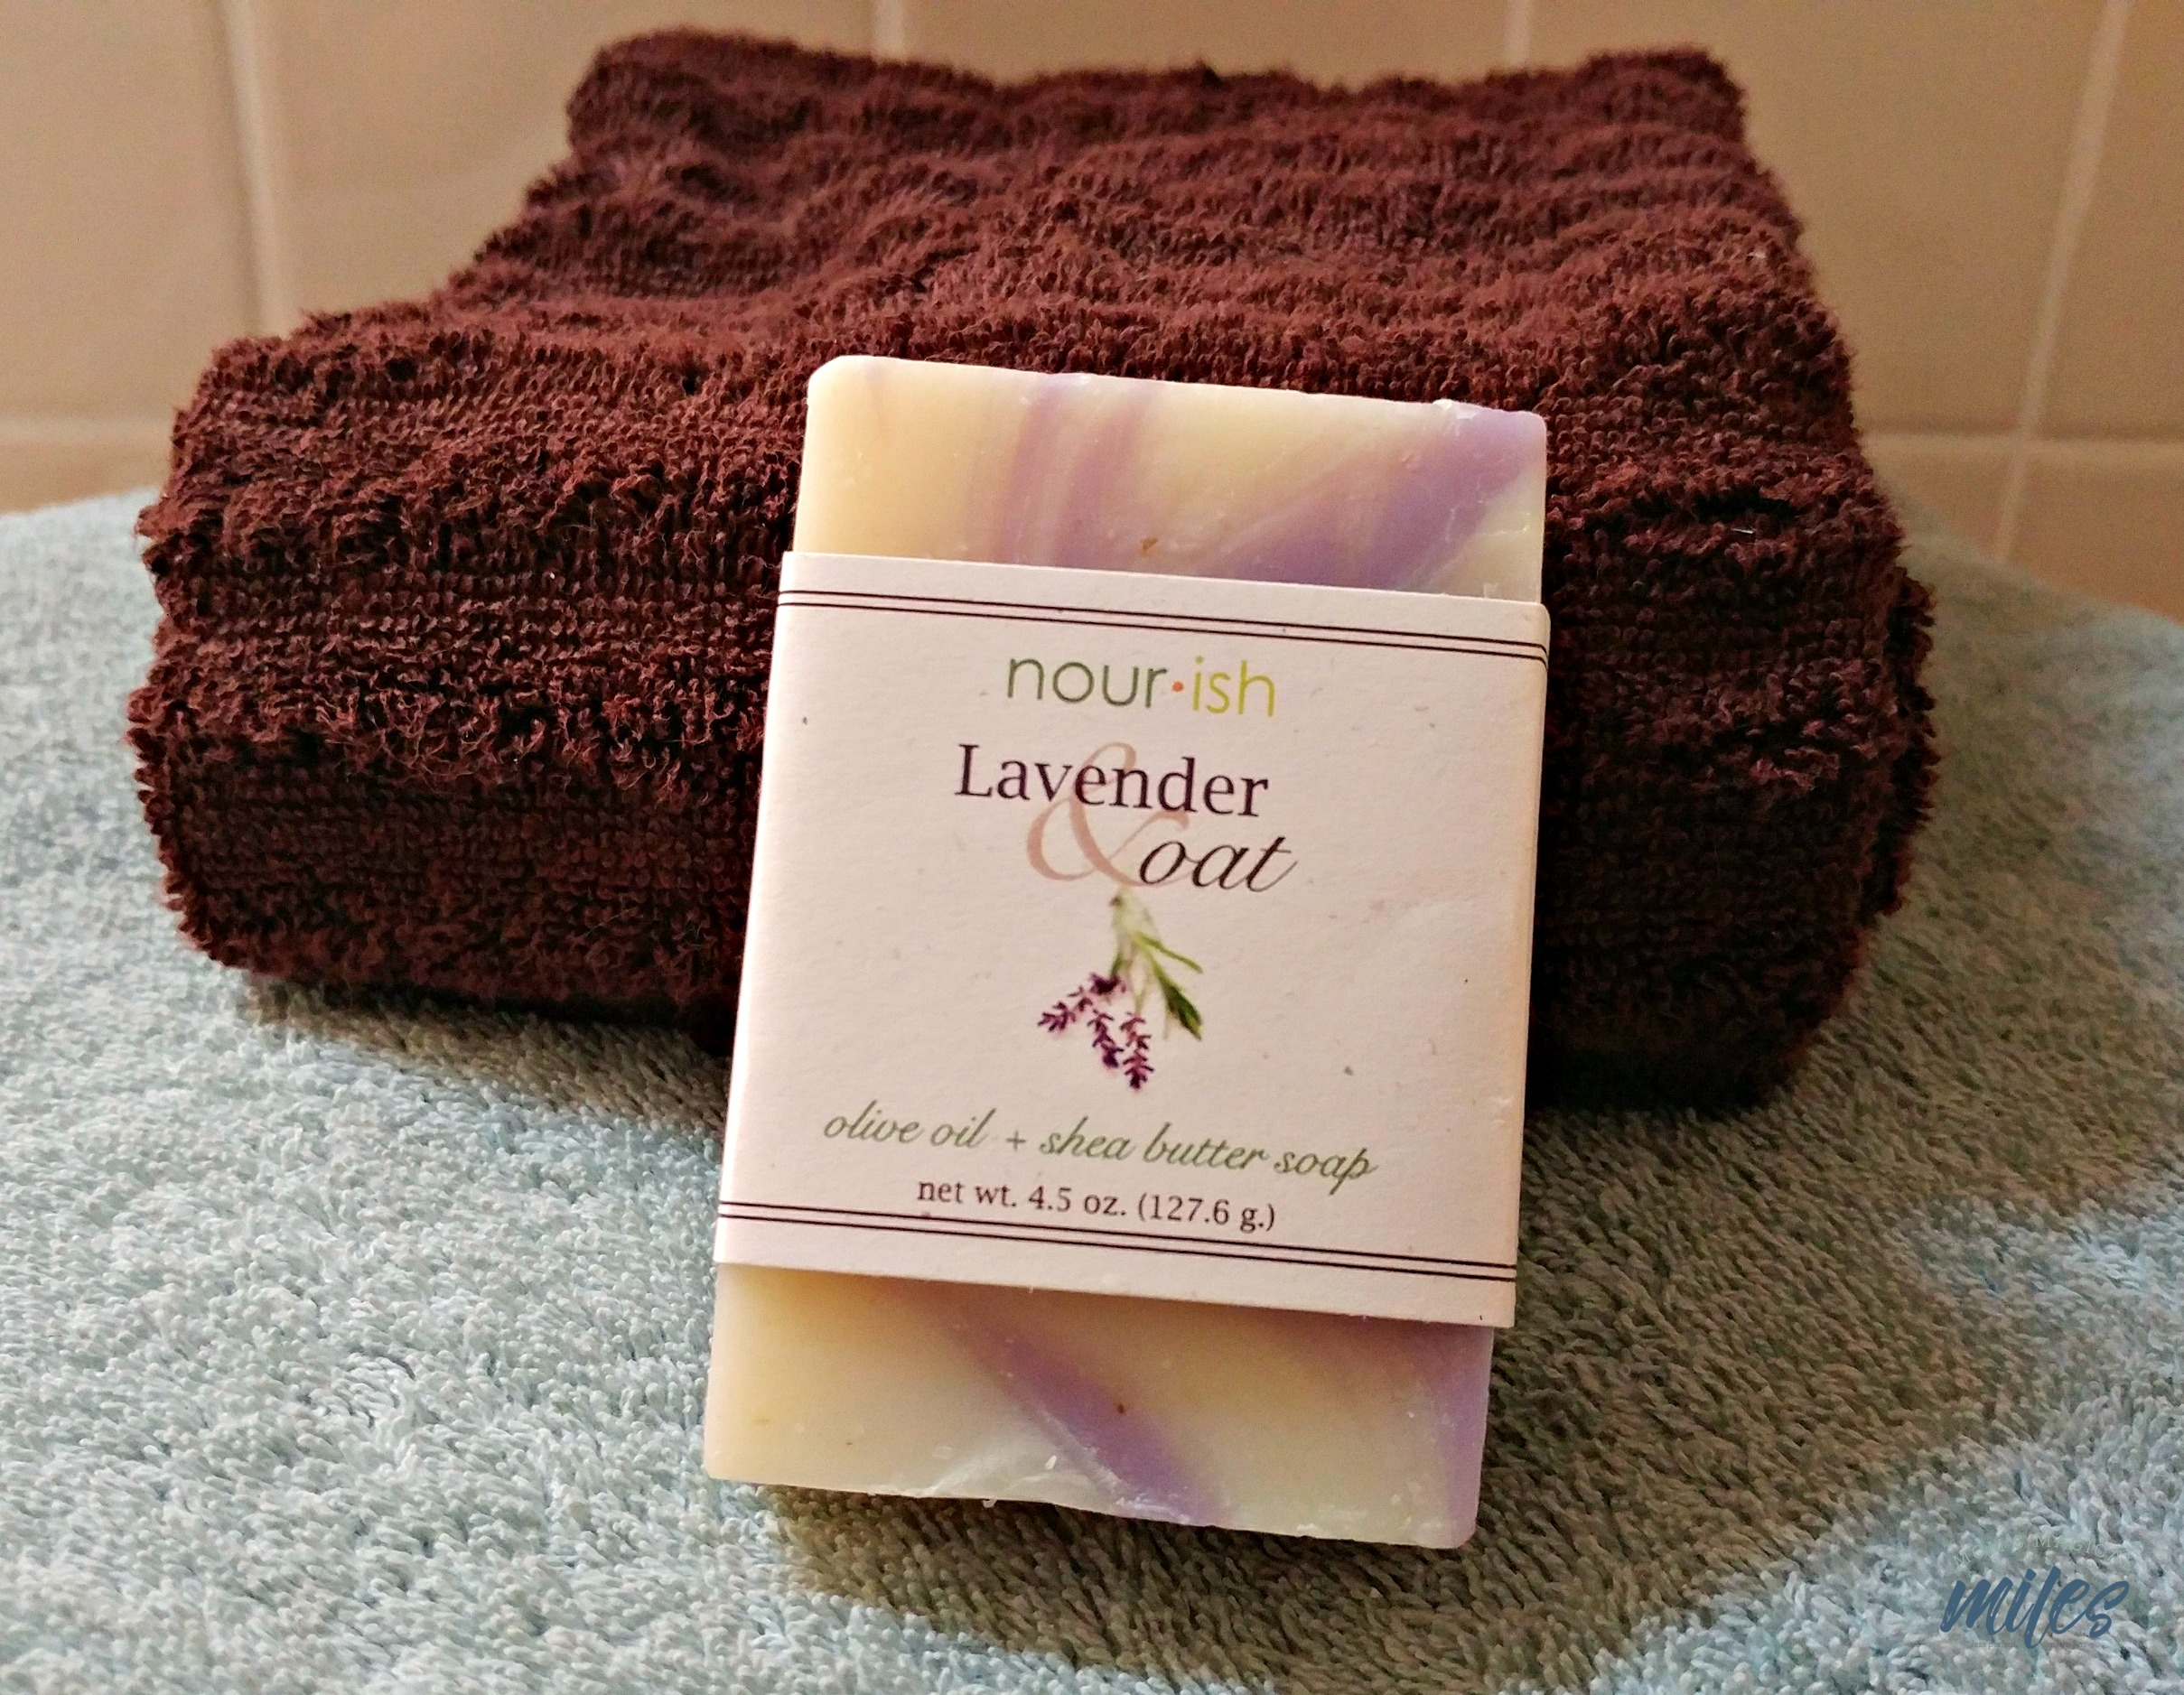 The soaps at Nourish Natural Bath Products in Savannah are handcrafted in small batches.